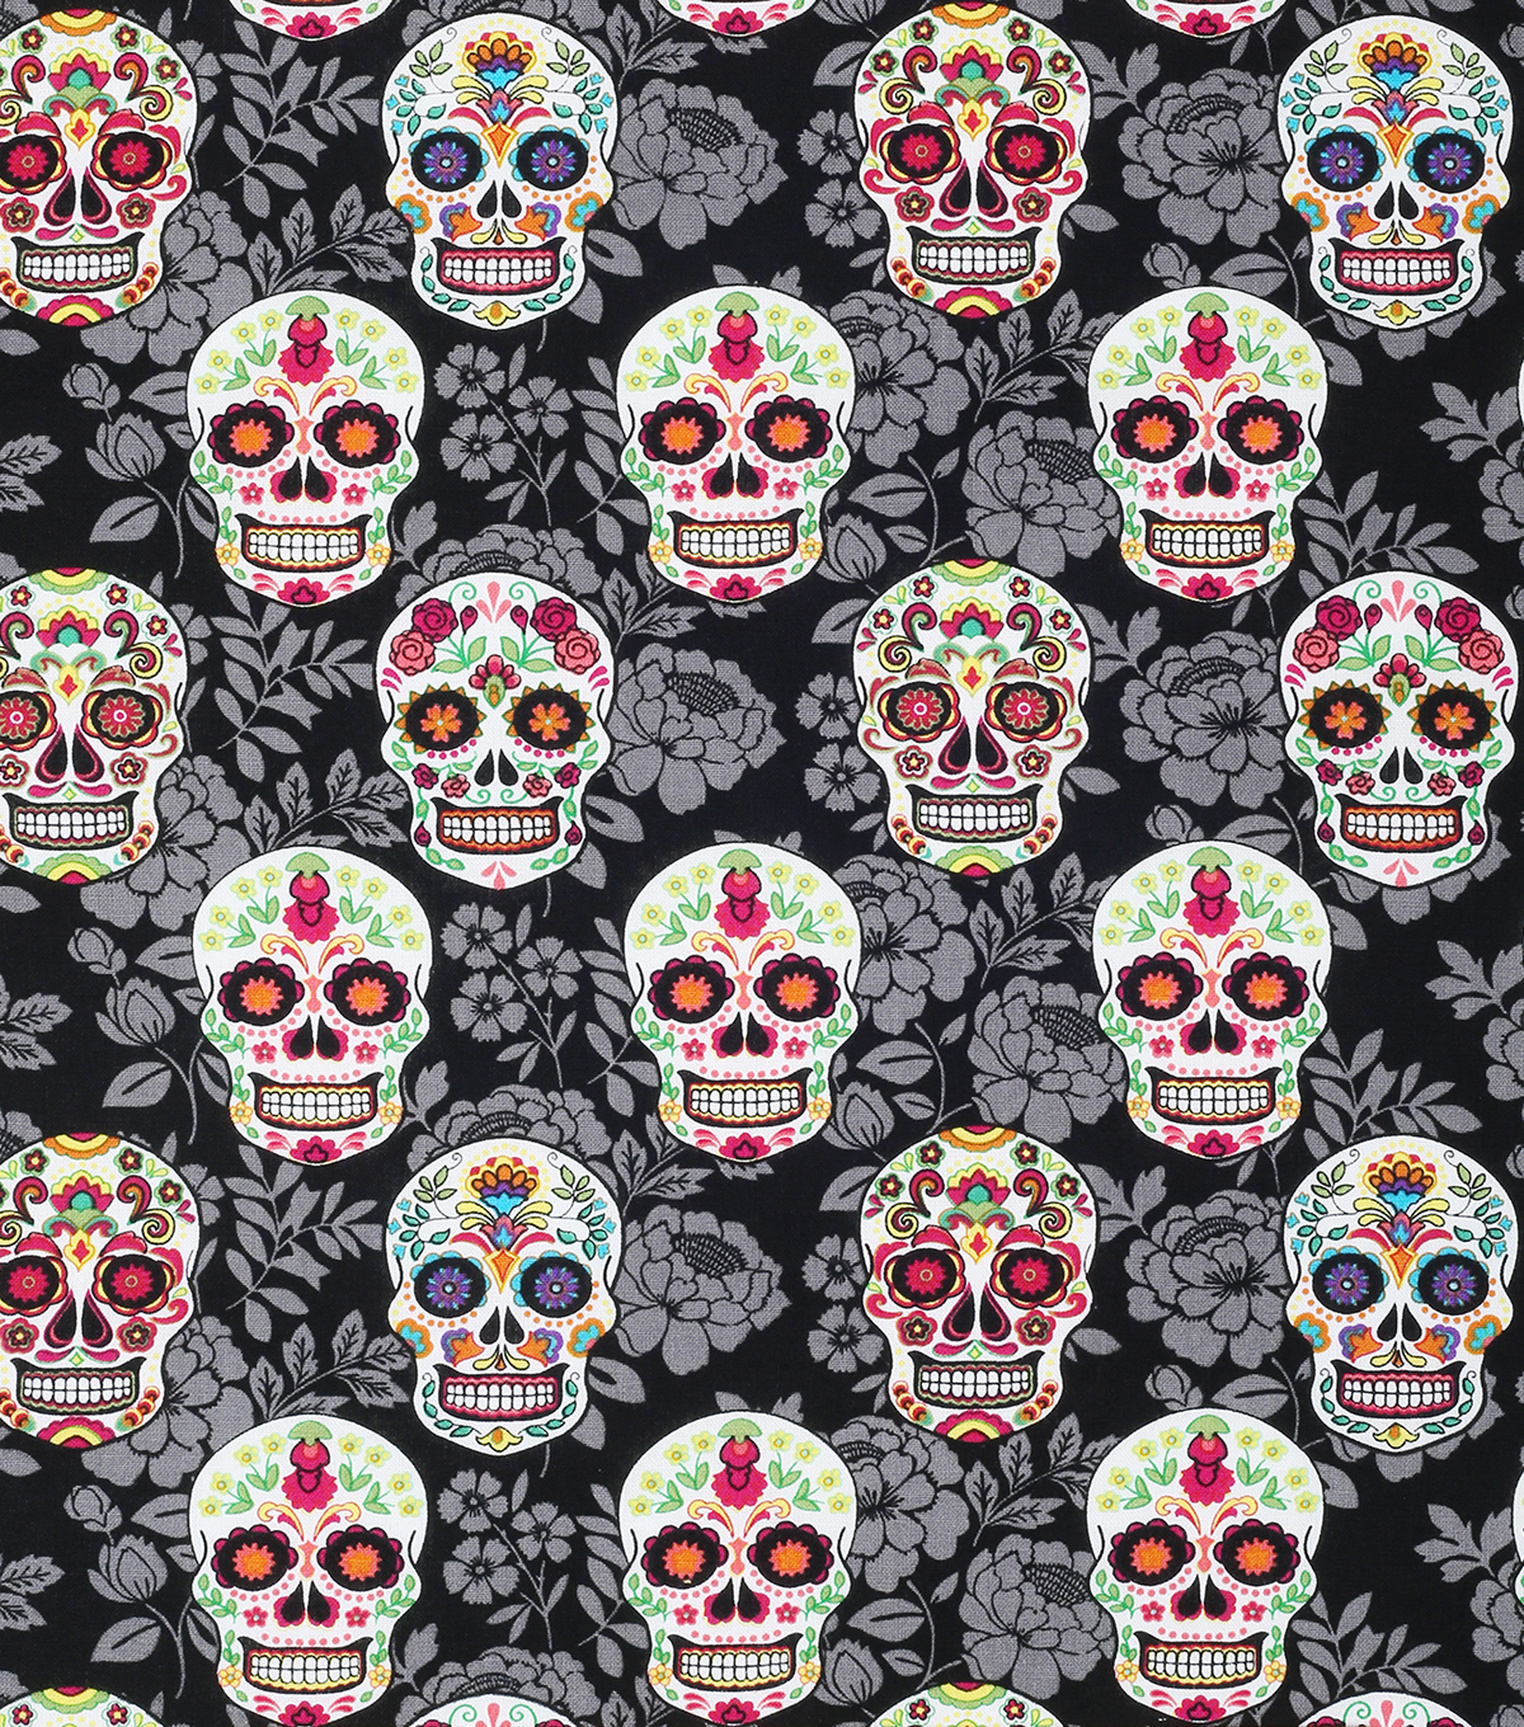 80fe18a3ce11 Novelty Cotton Fabric-Decorative Skulls On Black Floral | JOANN